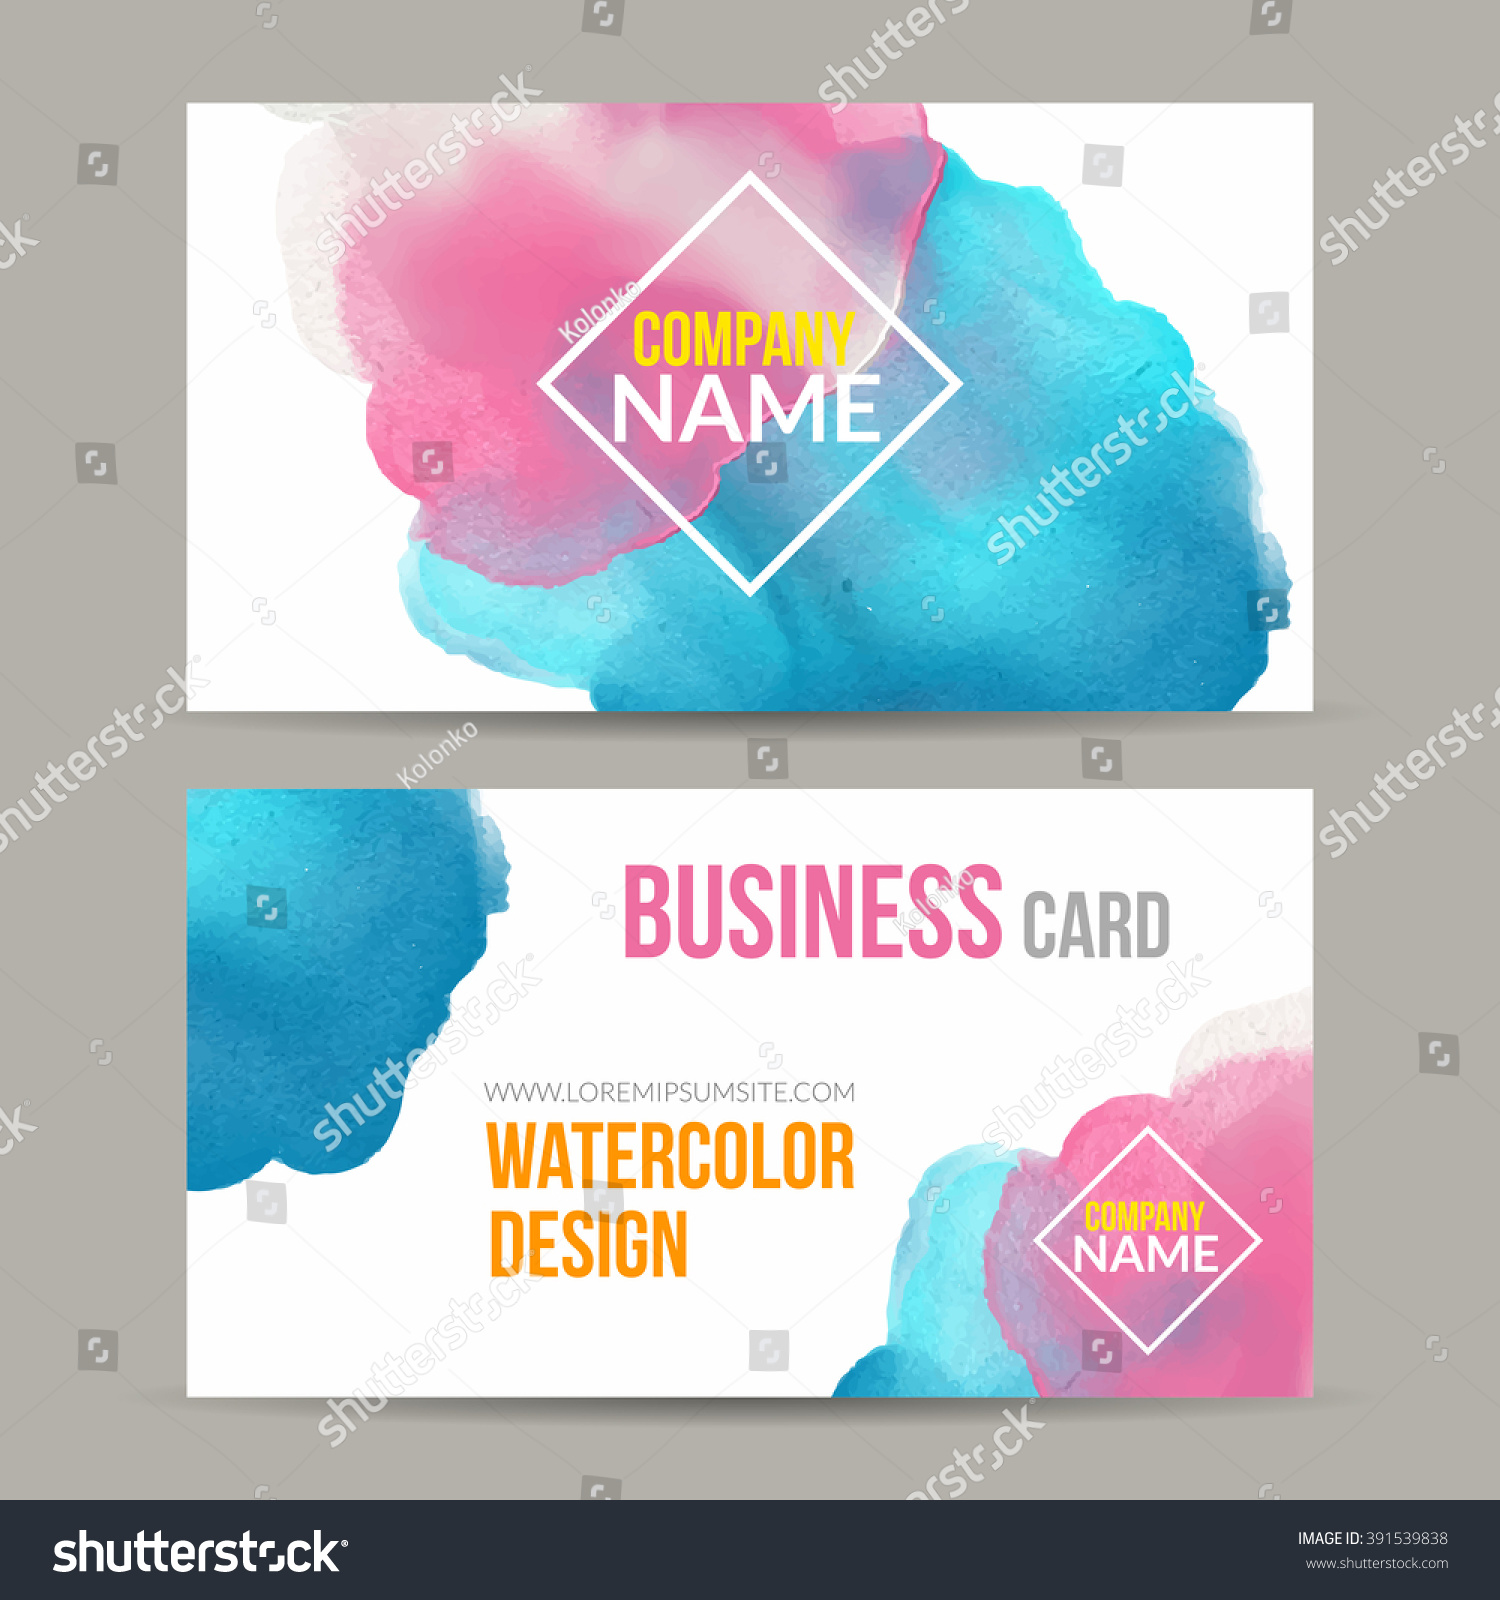 Vector Business Cards Template Watercolor Paint Stock Vector ...